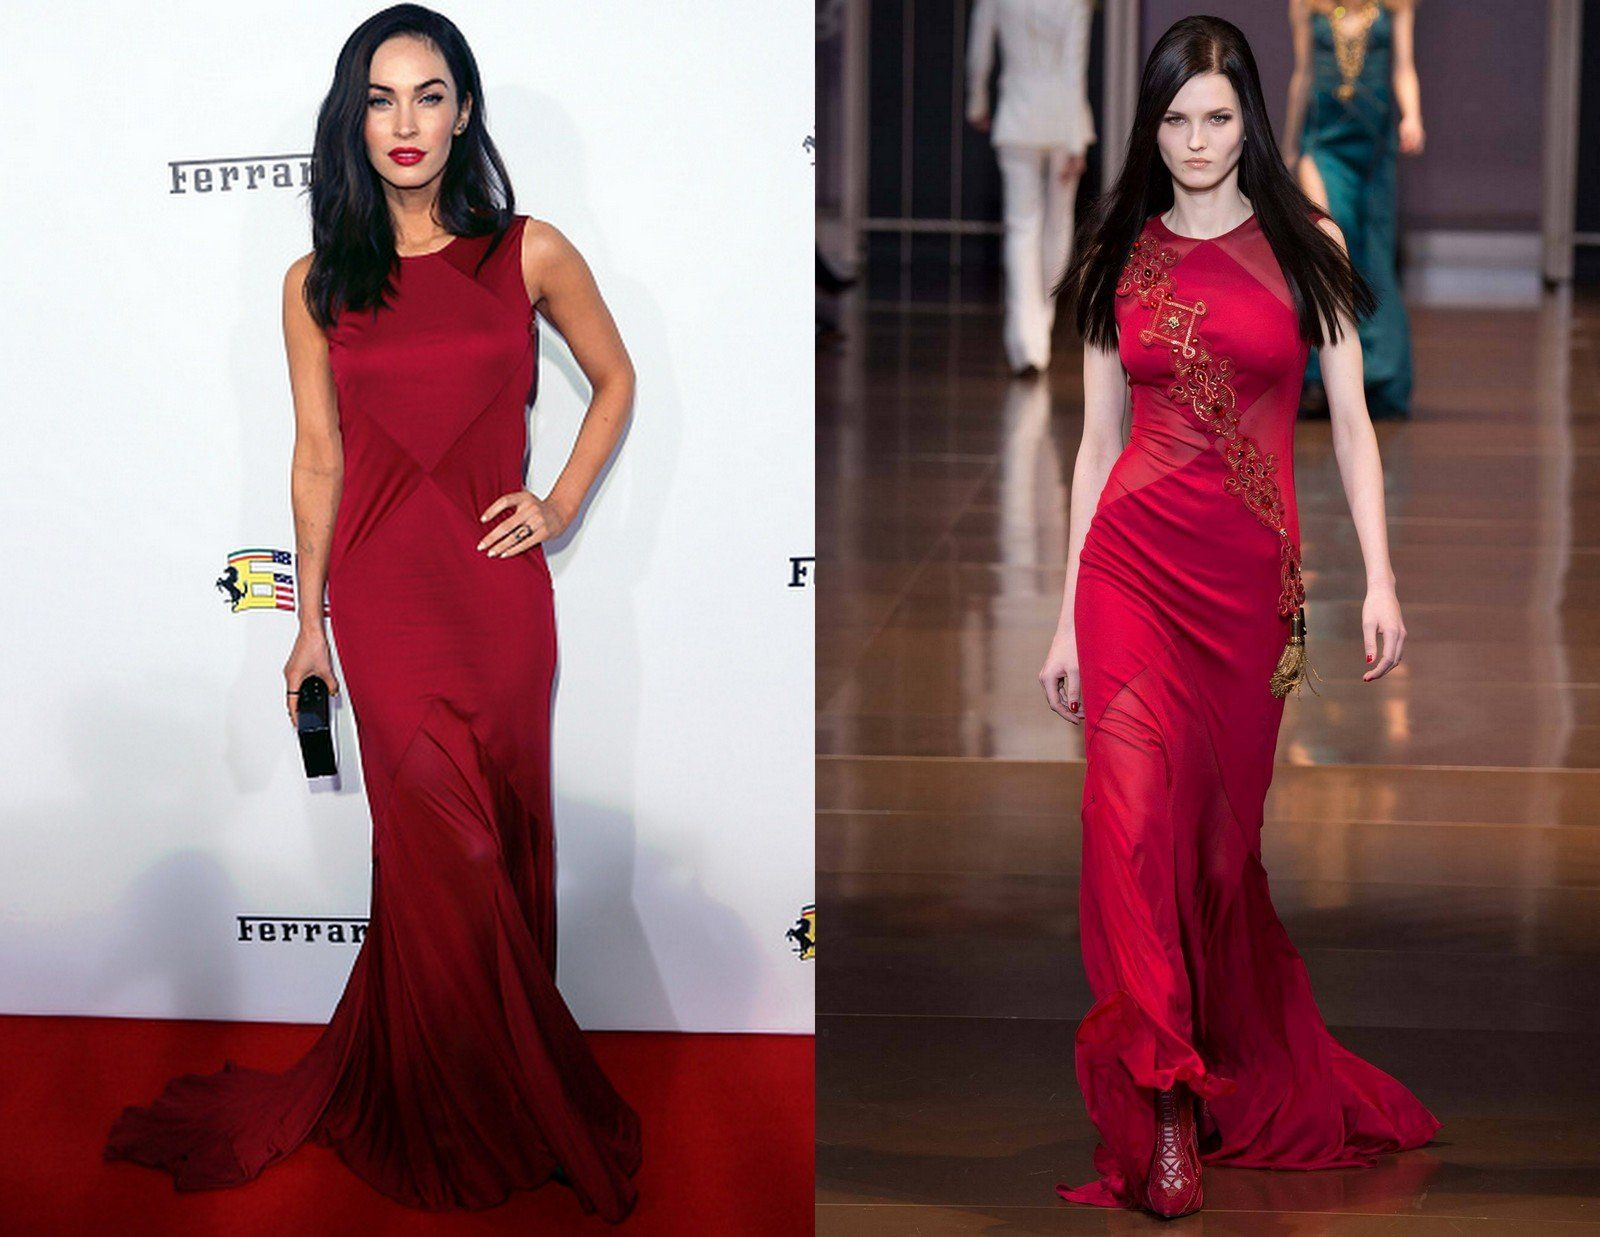 b4709c38cea Fabulously Spotted  Megan Fox Wearing Versace – Ferrari s 60th Anniversary  in the USA Gala